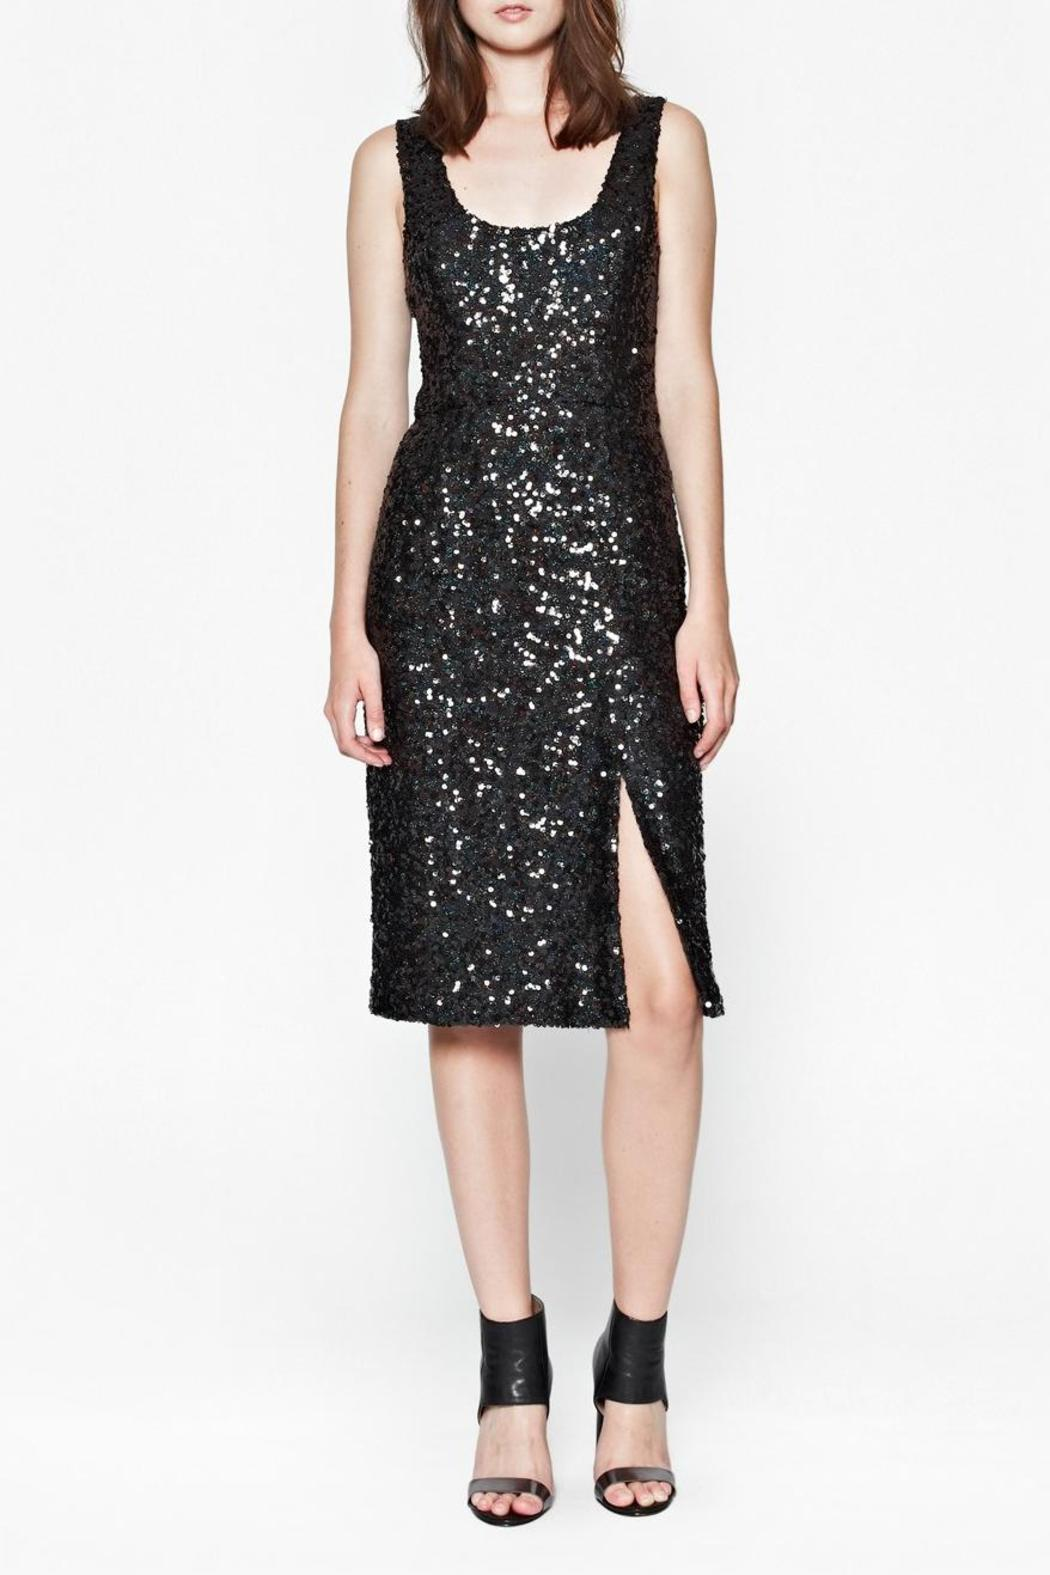 French Connection Cosmic Sparkle Dress - Front Full Image